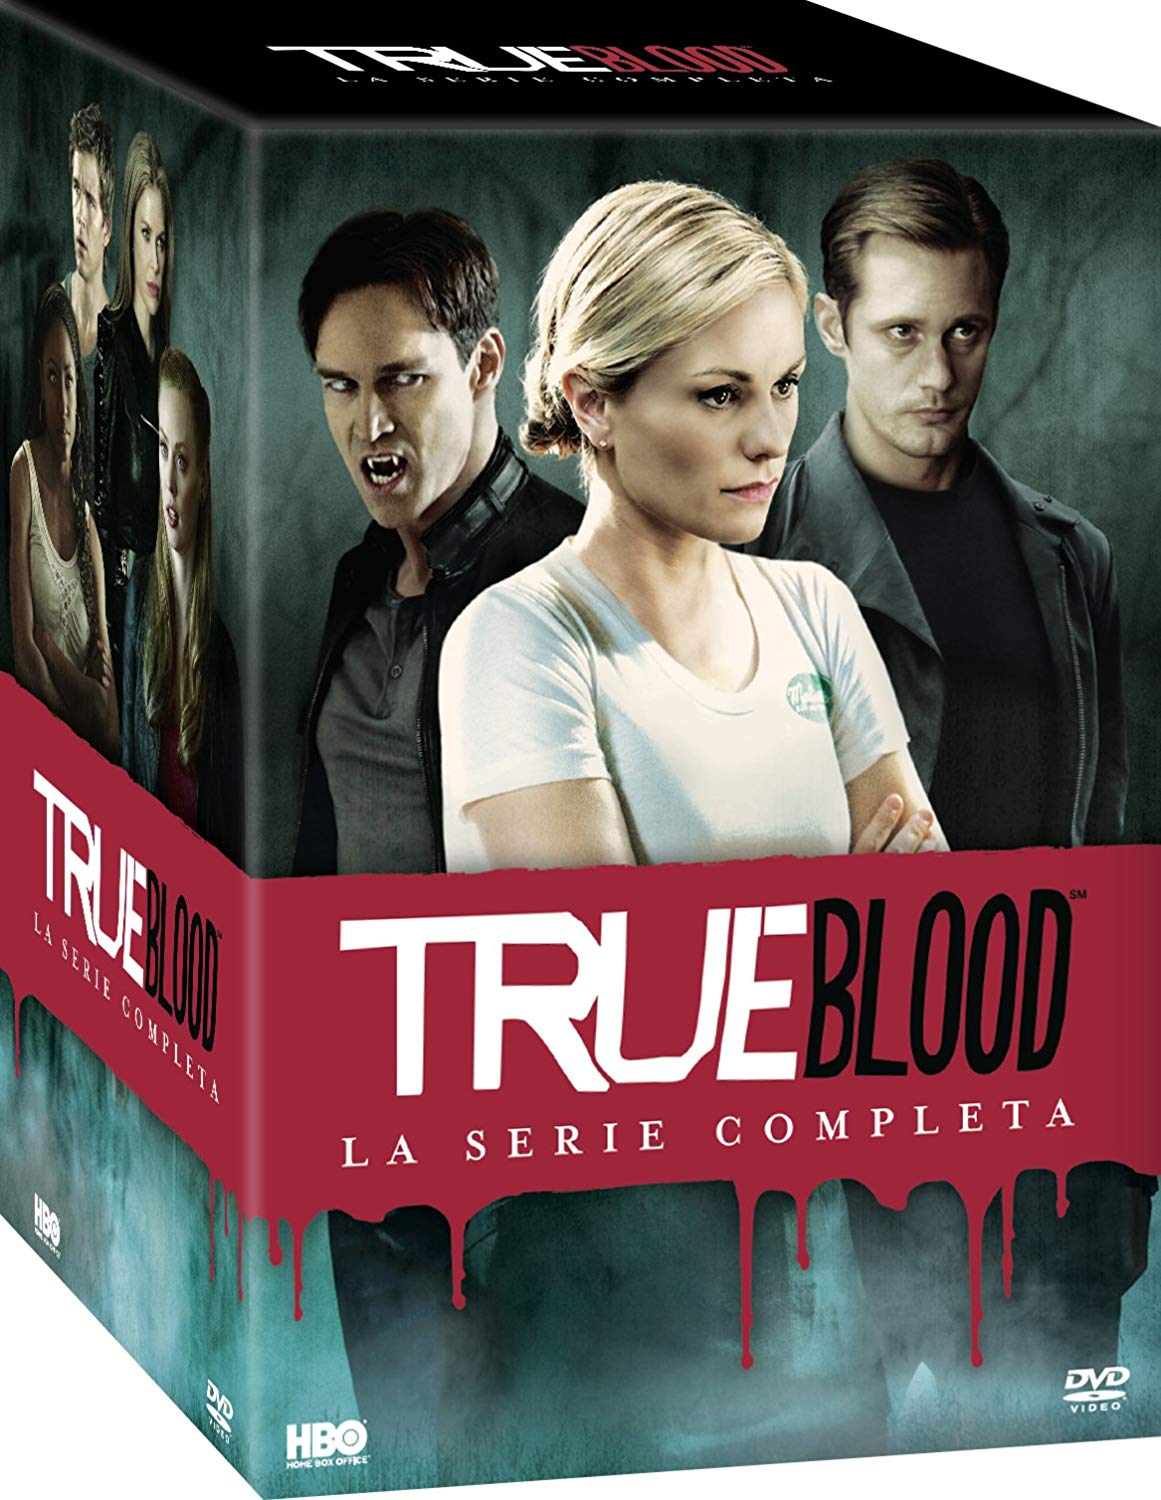 COF.TRUE BLOOD - LA SERIE COMPLETA (33 DVD) (DVD)